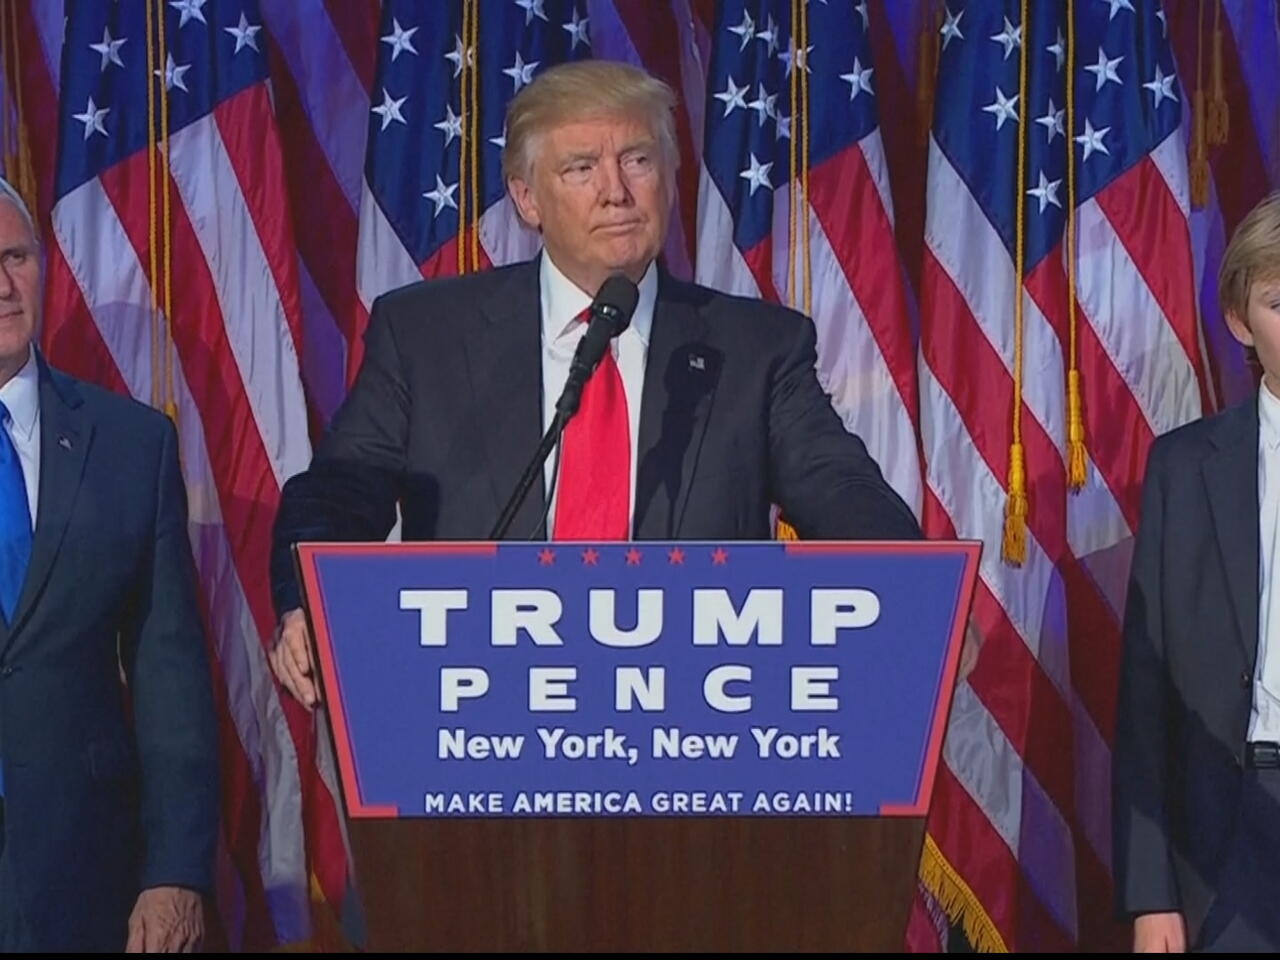 Donald Trump Presumes Victory Ahead of Election Results